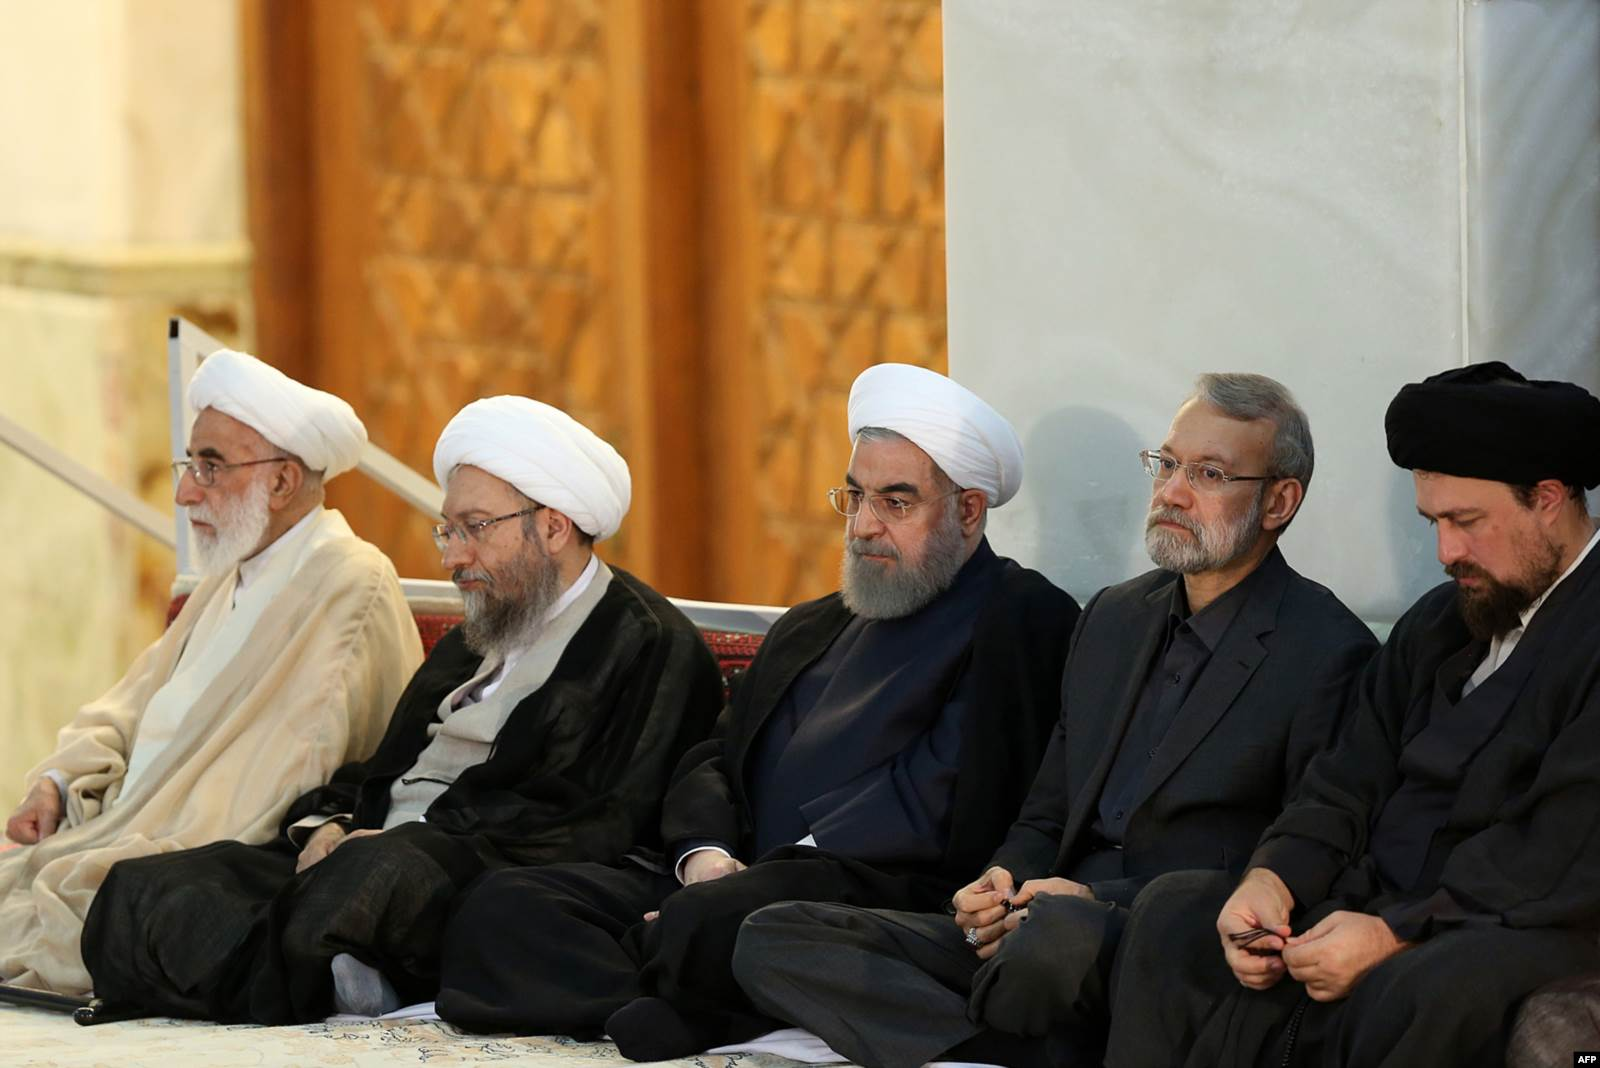 1st from left-Iran's head of the Assembly of Experts, Ahmad Jannati June 4 2017(AFP)